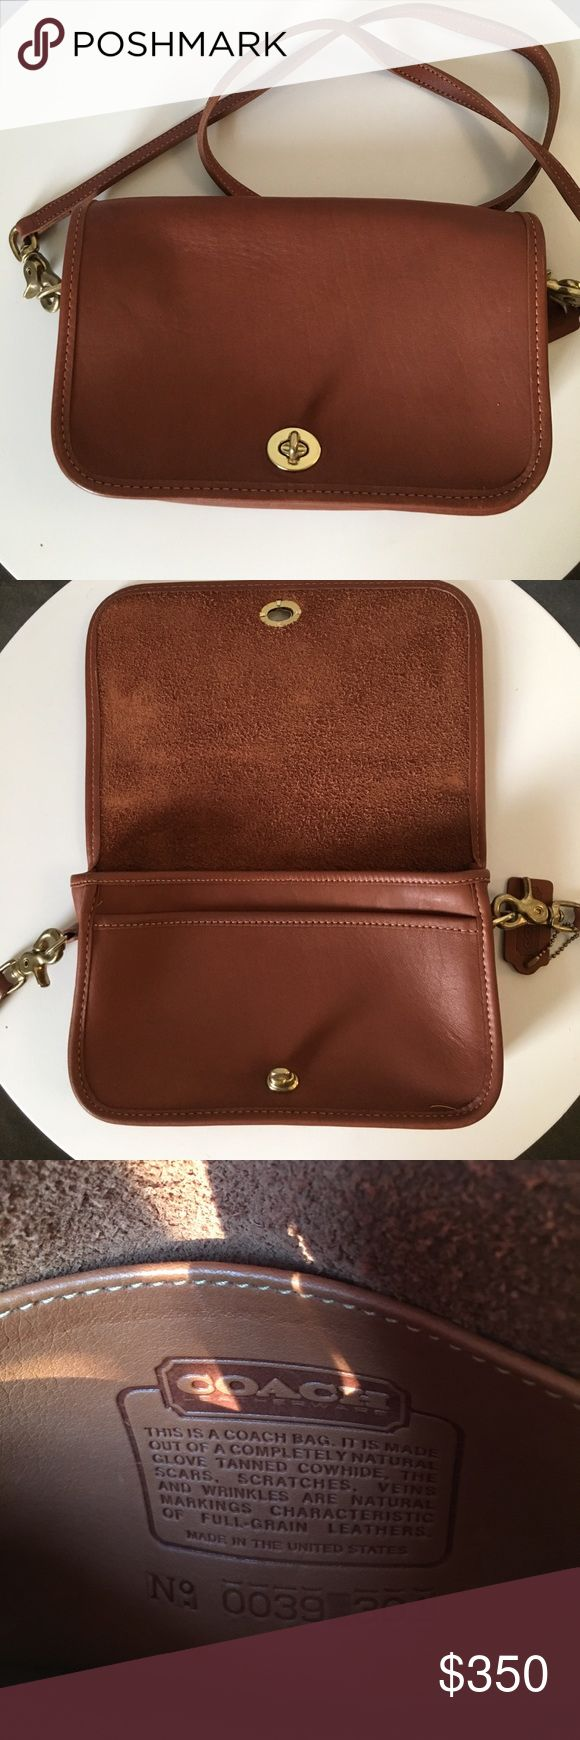 """Vintage Leather Coach Purse GORGEOUS!! Vintage coach purse, brown leather, made in the USA. Two interior pockets and one exterior. Slight tarnish in the hardware and slight bend on one side of the leather hang tag. Otherwise in really excellent condition!! 9.5"""" wide x 6"""" tall. Coach Bags Crossbody Bags"""